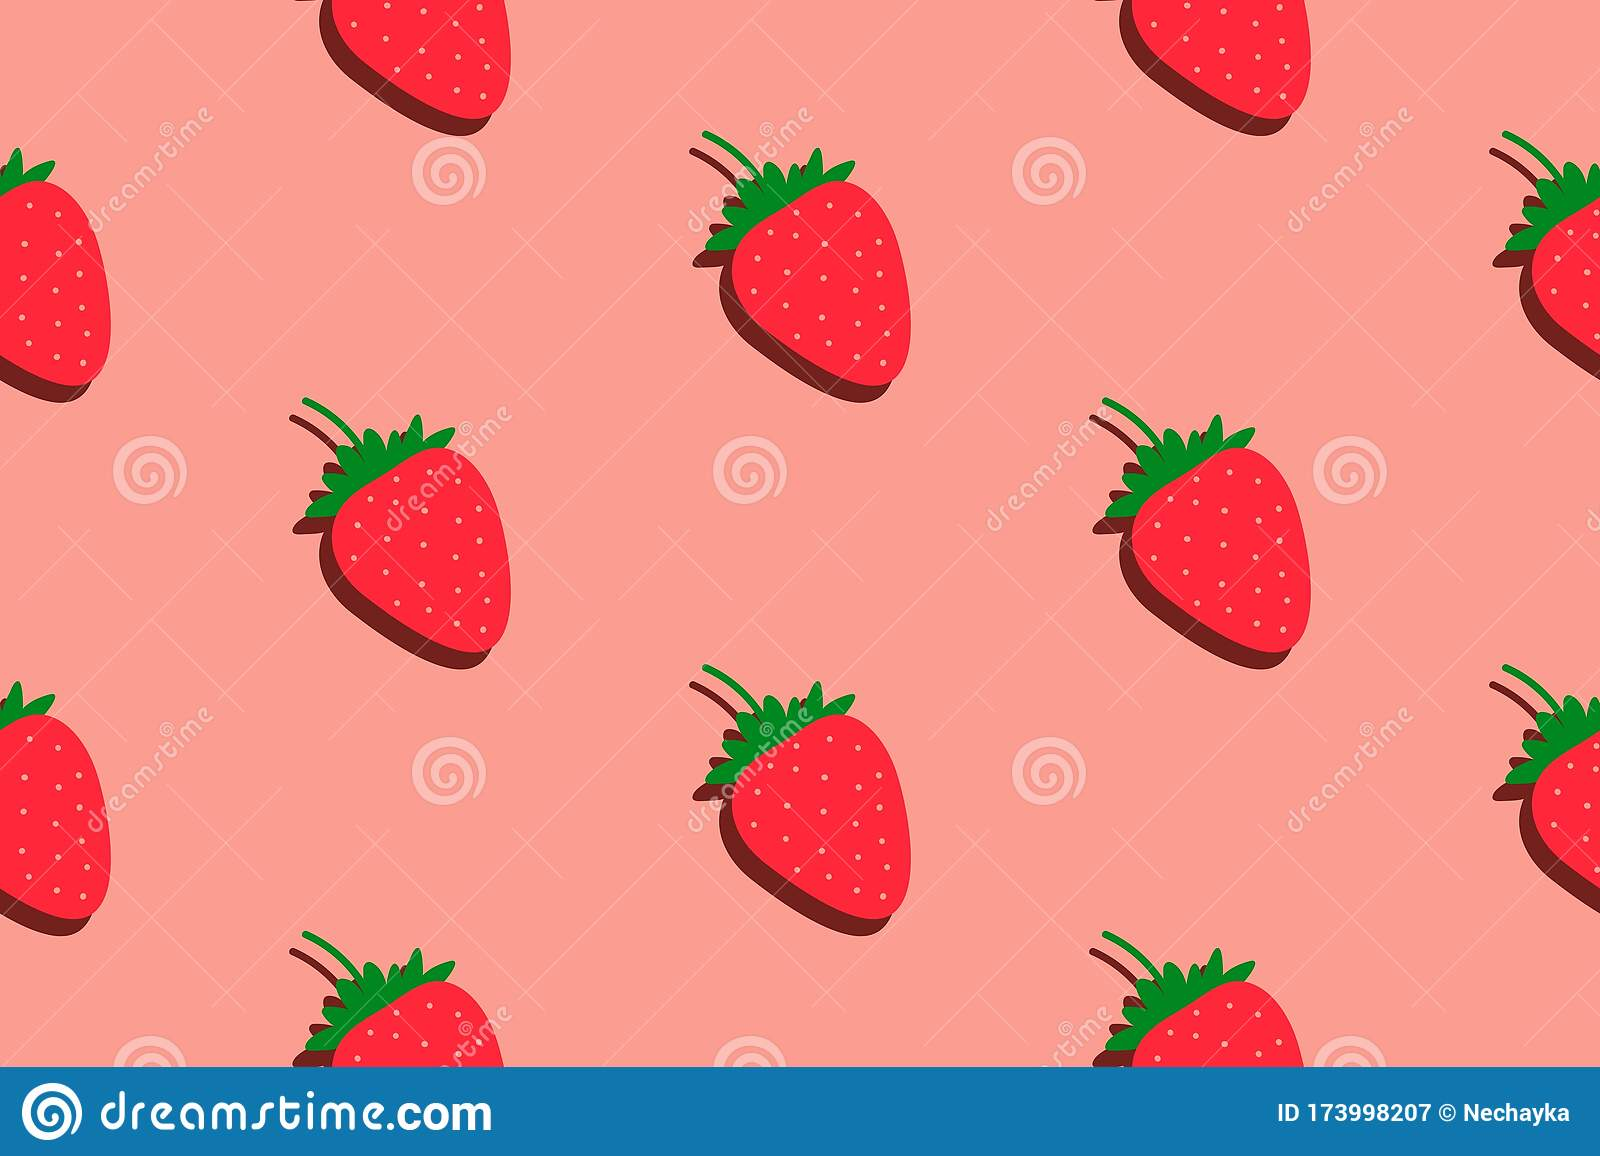 Strawberry Pattern Seamless Summer Background Bright Kitchen Home Decor Or Healthy Eating Design With Cute Berry Stock Vector Illustration Of 173998207